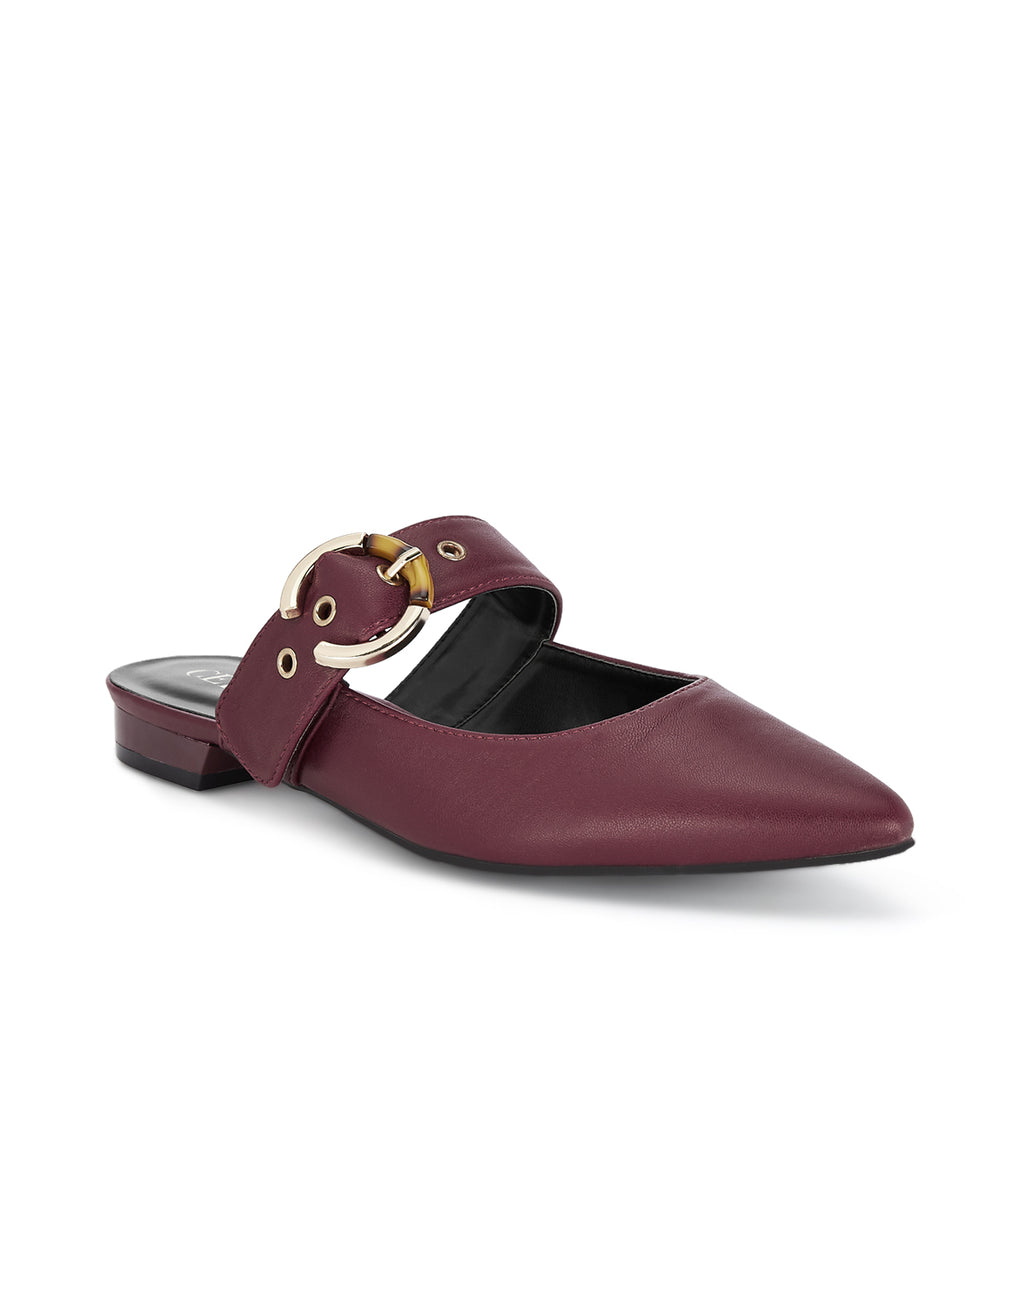 Madeleine Burgundy Slip-on Loafers